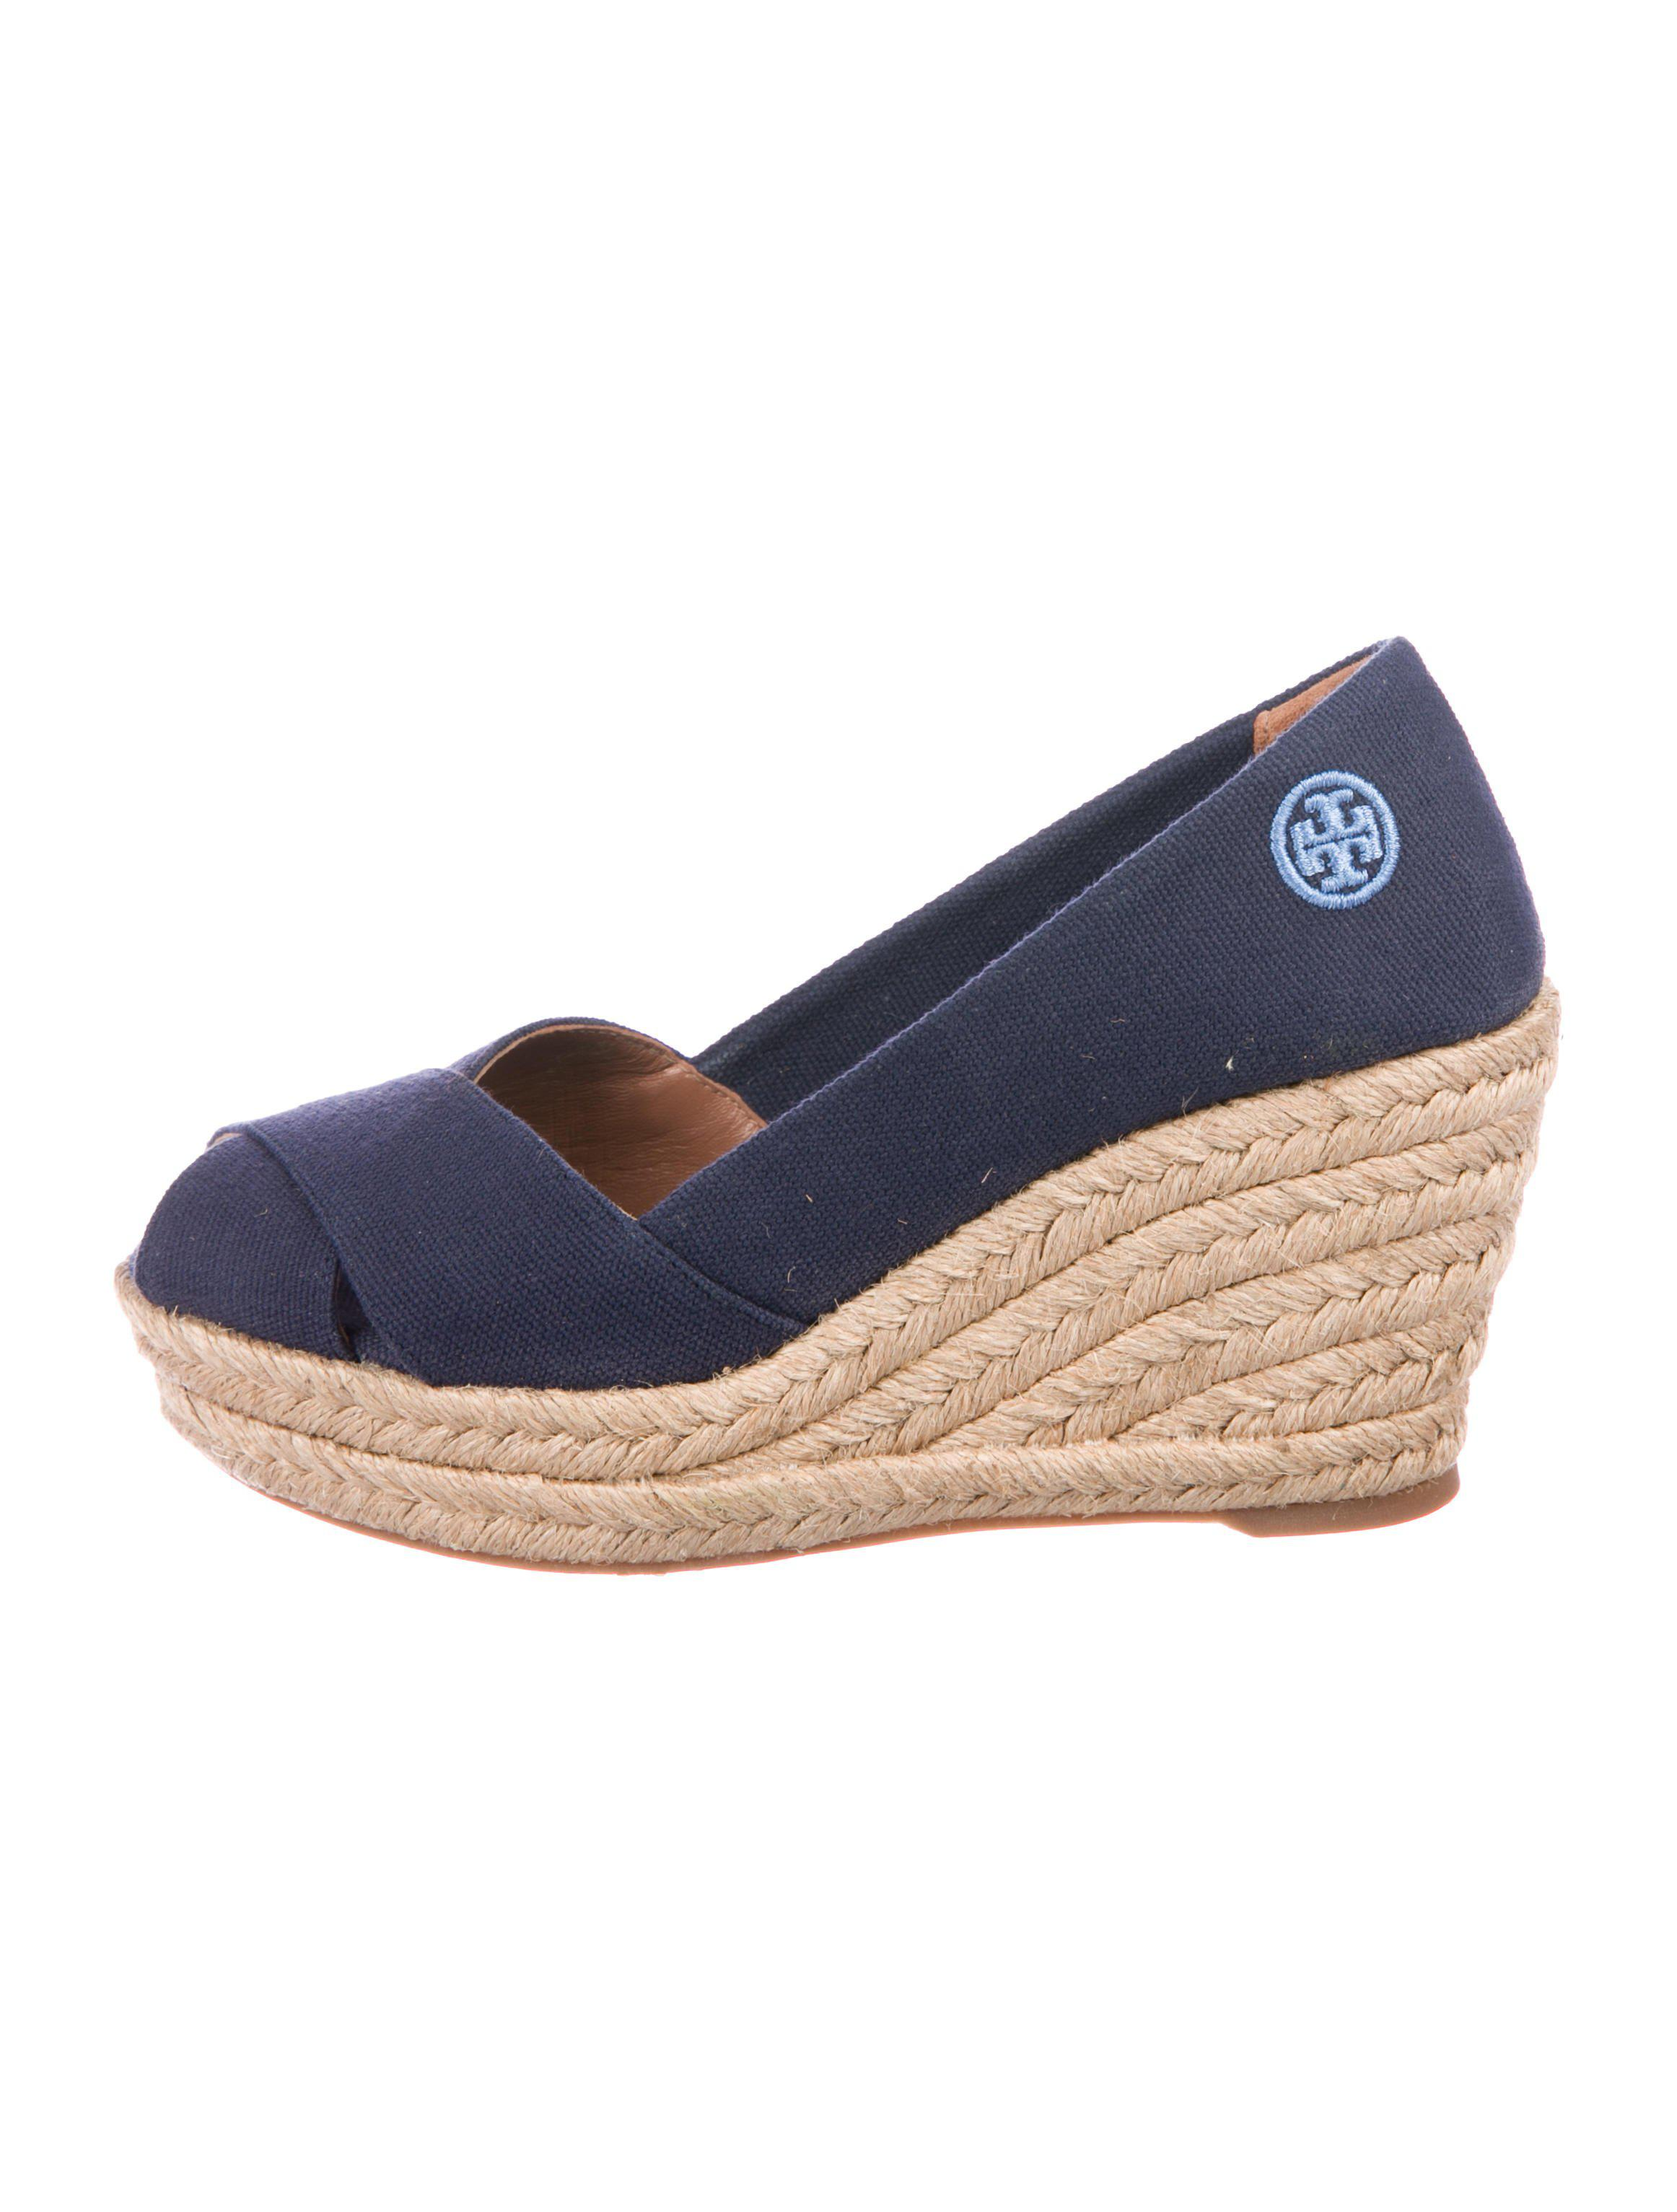 7a316c33074 Lyst - Tory Burch Platform Canvas Wedges Navy in Natural